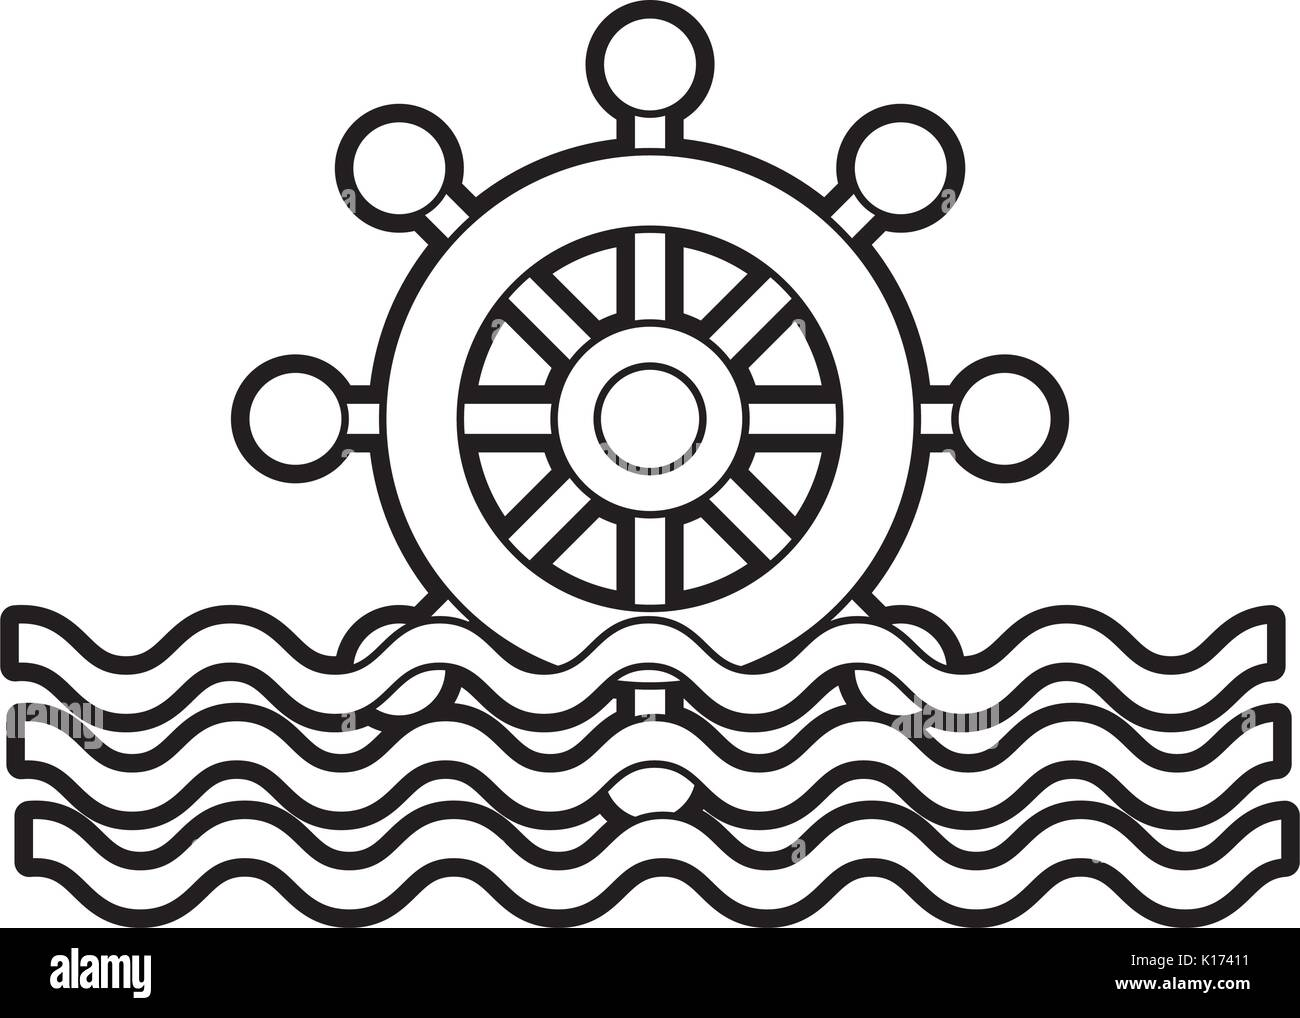 waves stock vector images page 2 alamy Pennant Banner Clear Background boat timon with sea waves stock vector